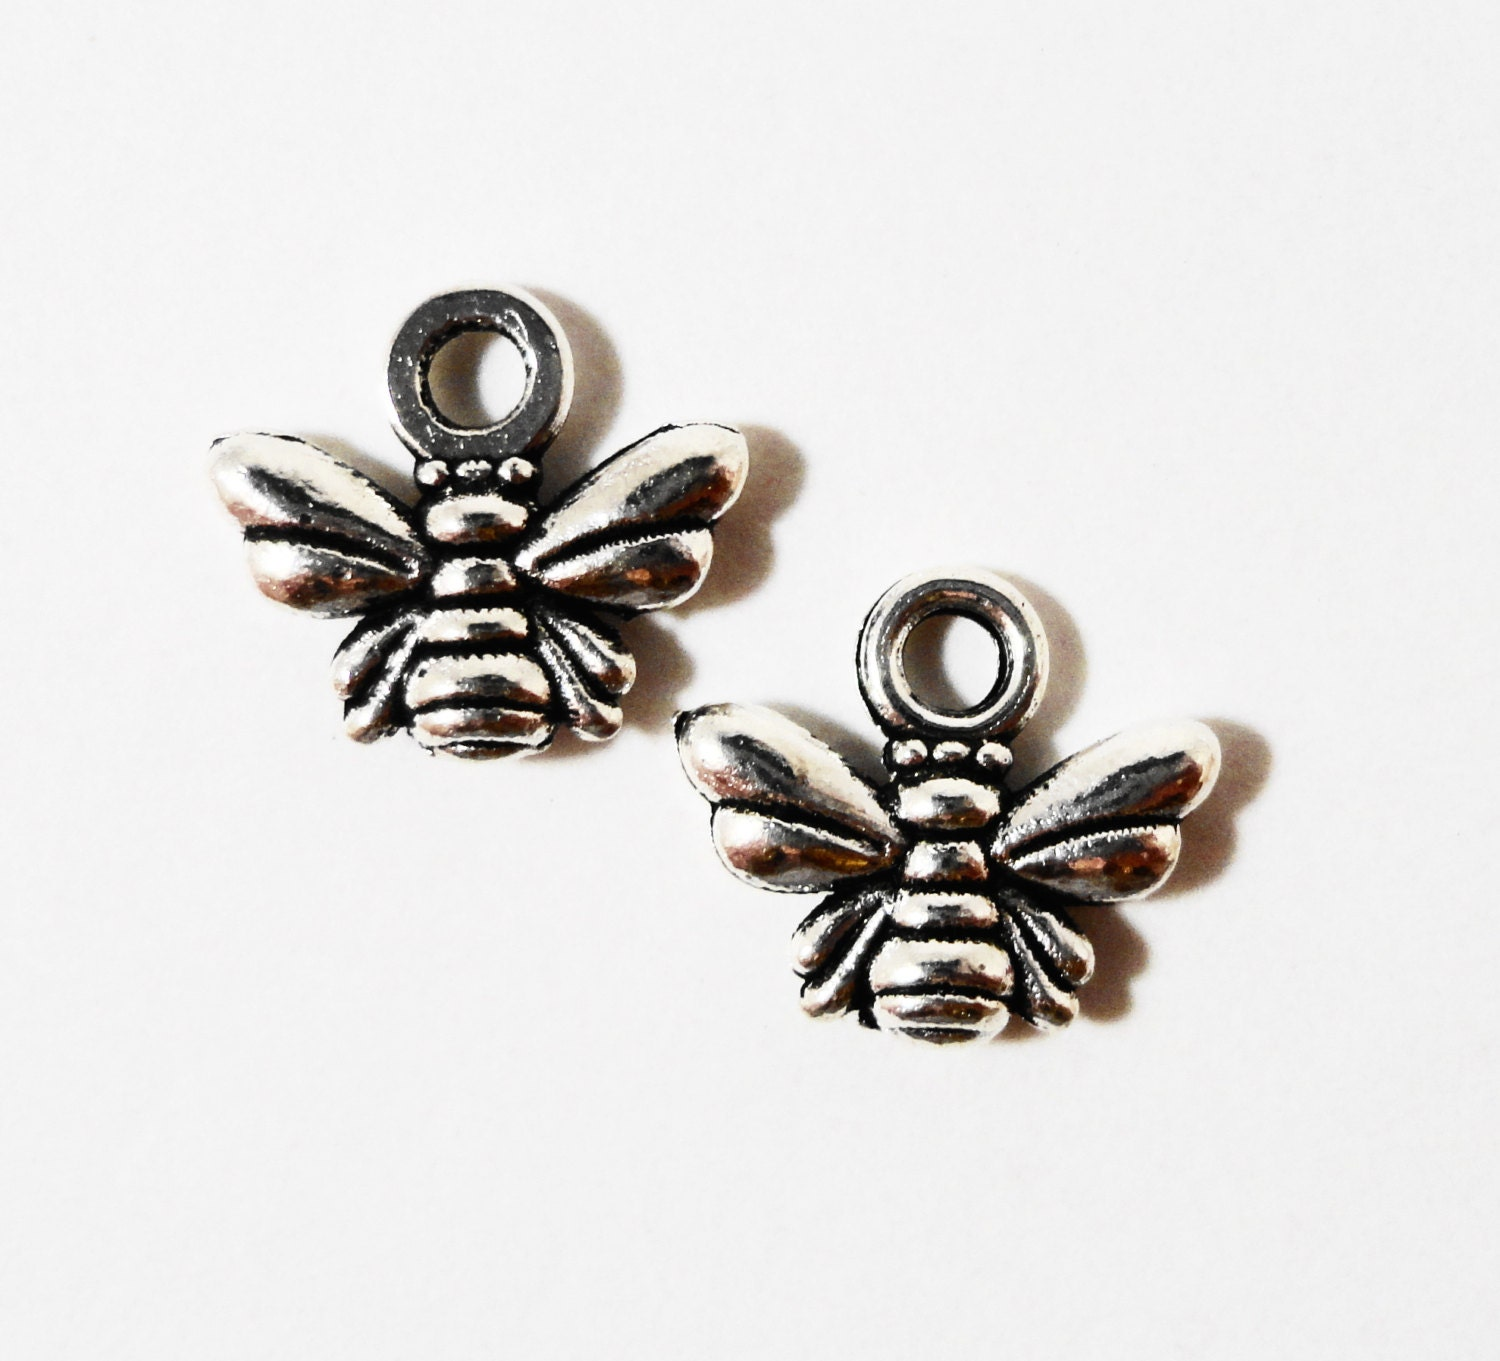 50pcs silver bee charms 10x10mm antique silver honey bee charms 50pcs silver bee charms 10x10mm antique silver honey bee charms bumble bee charm insect charm bee pendant wholesale metal charms bulk charms aloadofball Choice Image